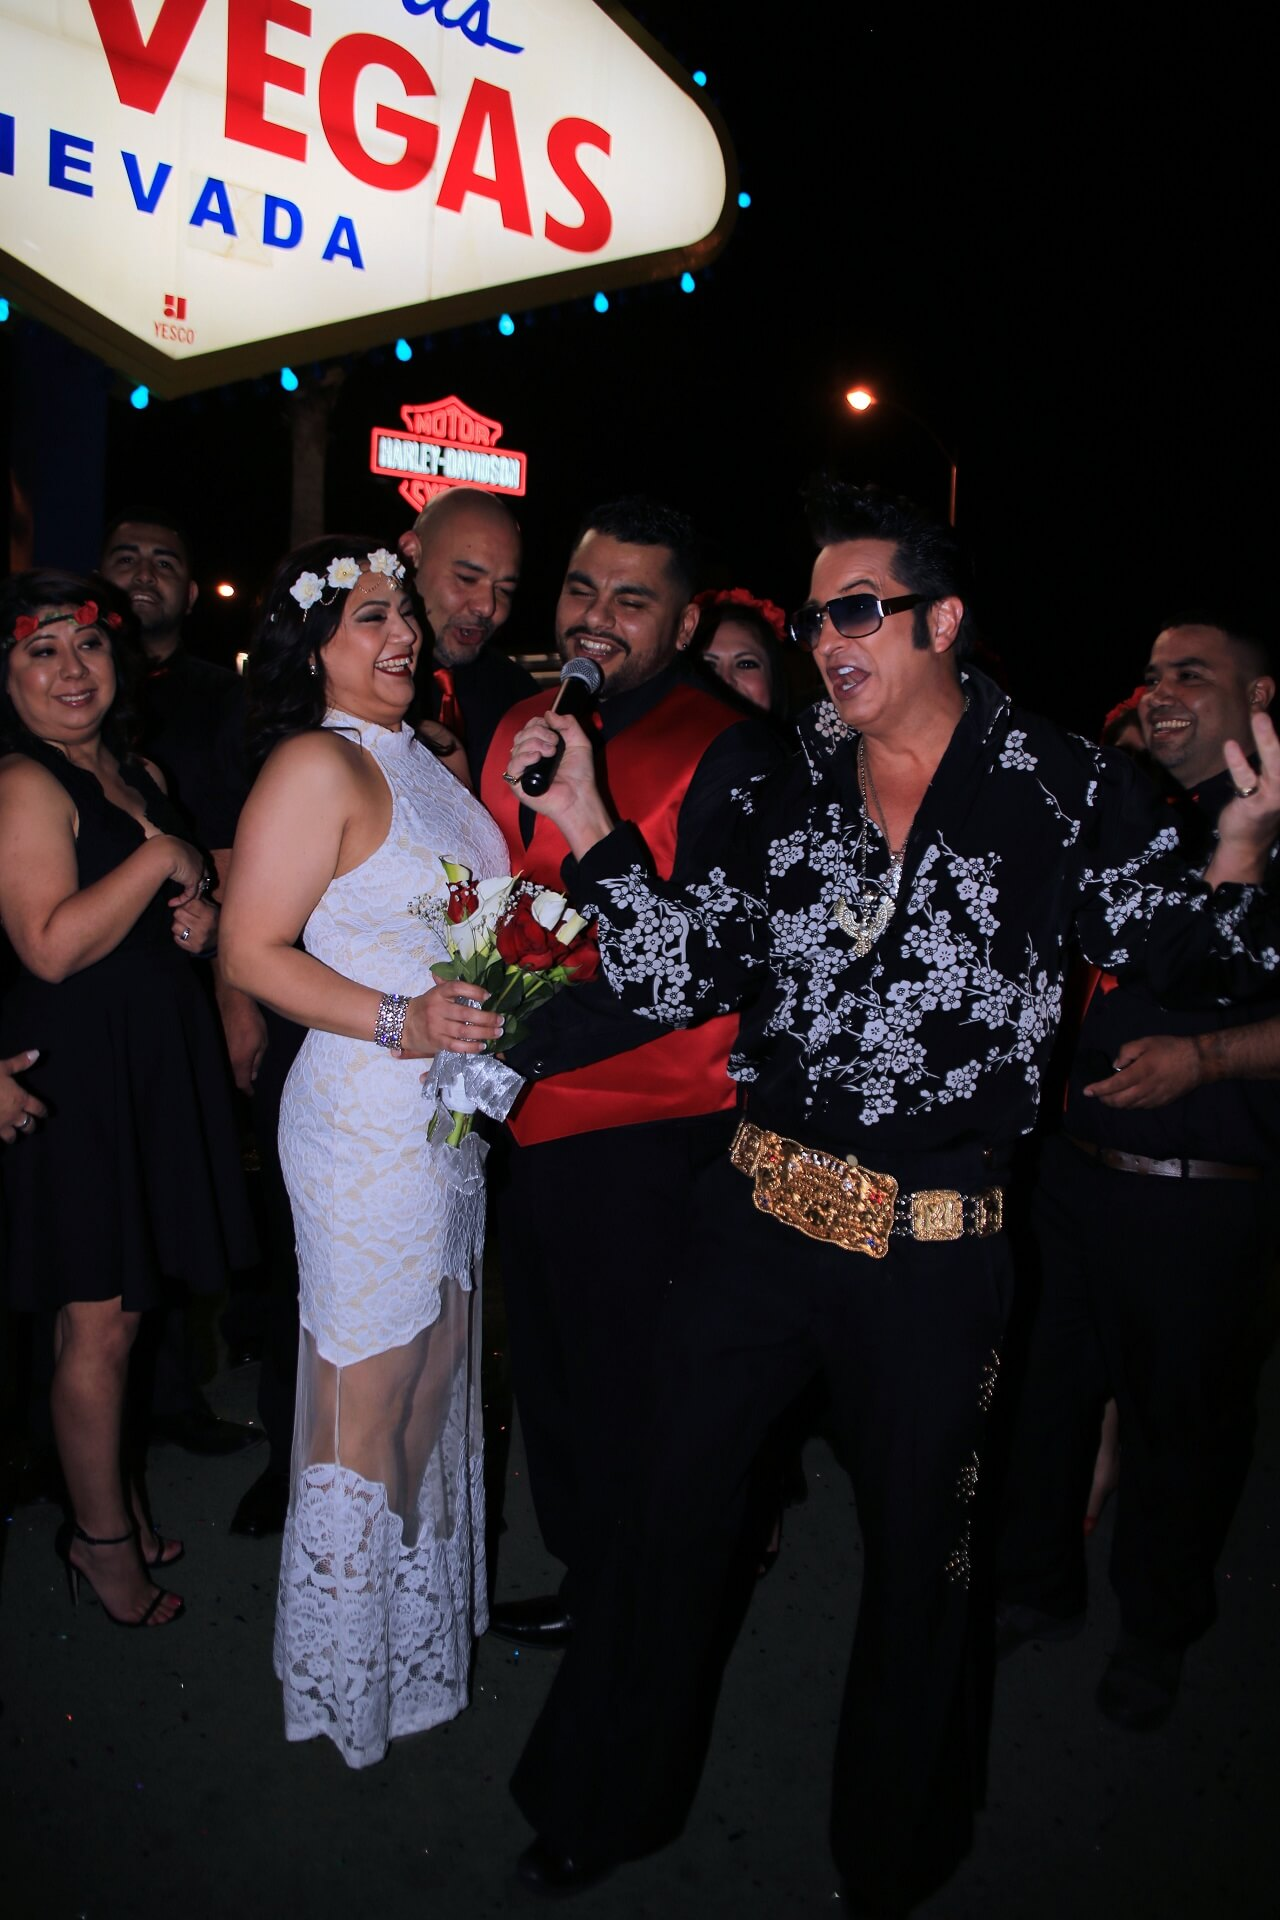 Party With Elvis